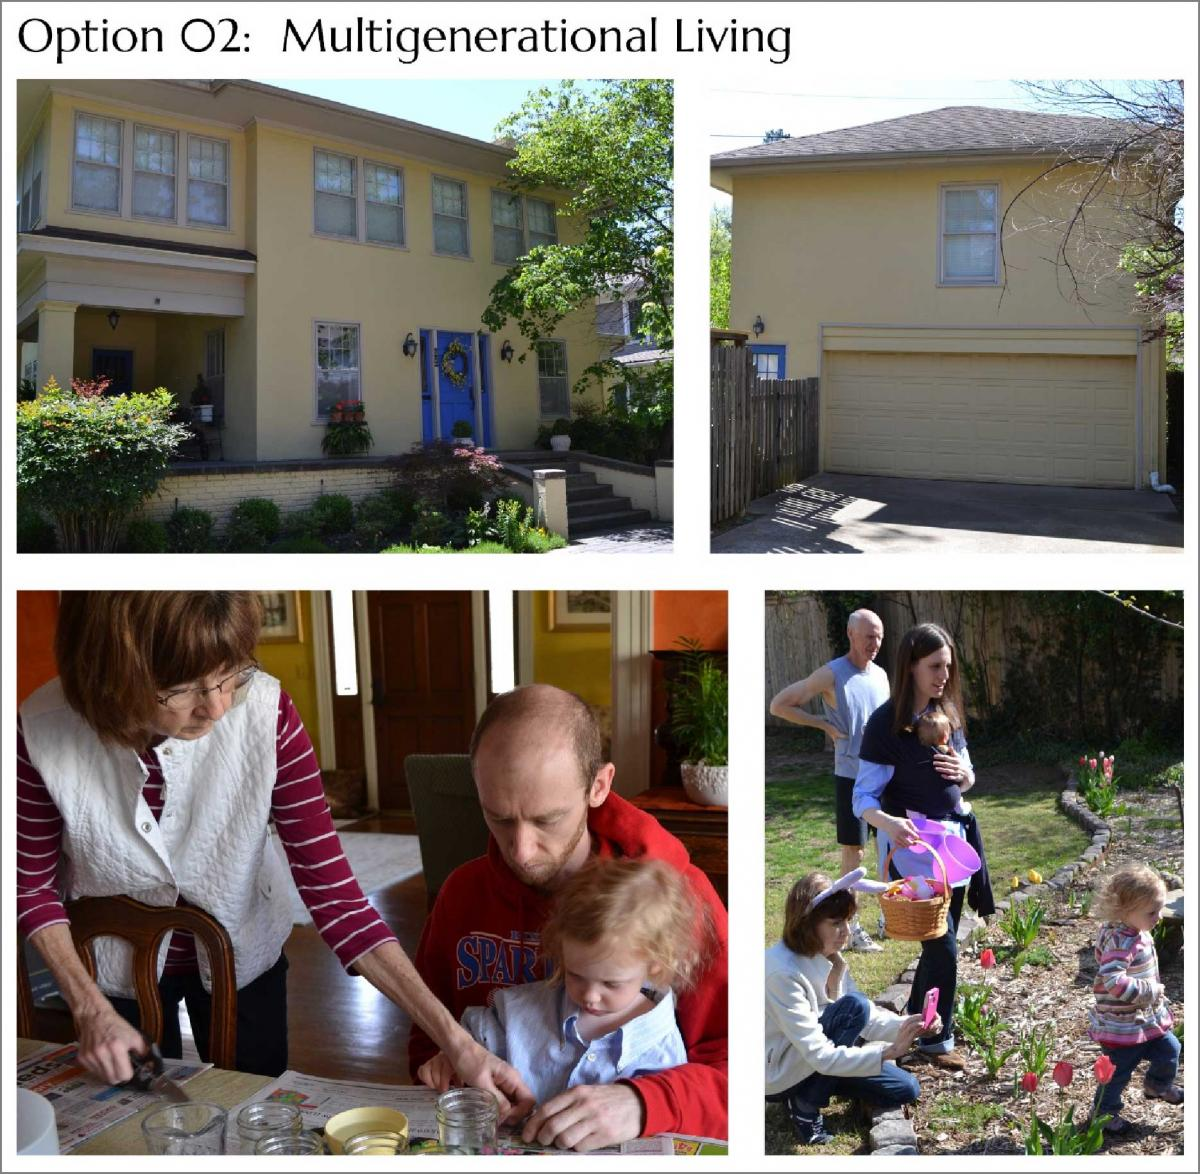 Affordable, Alternative, And Family-friendly Urban